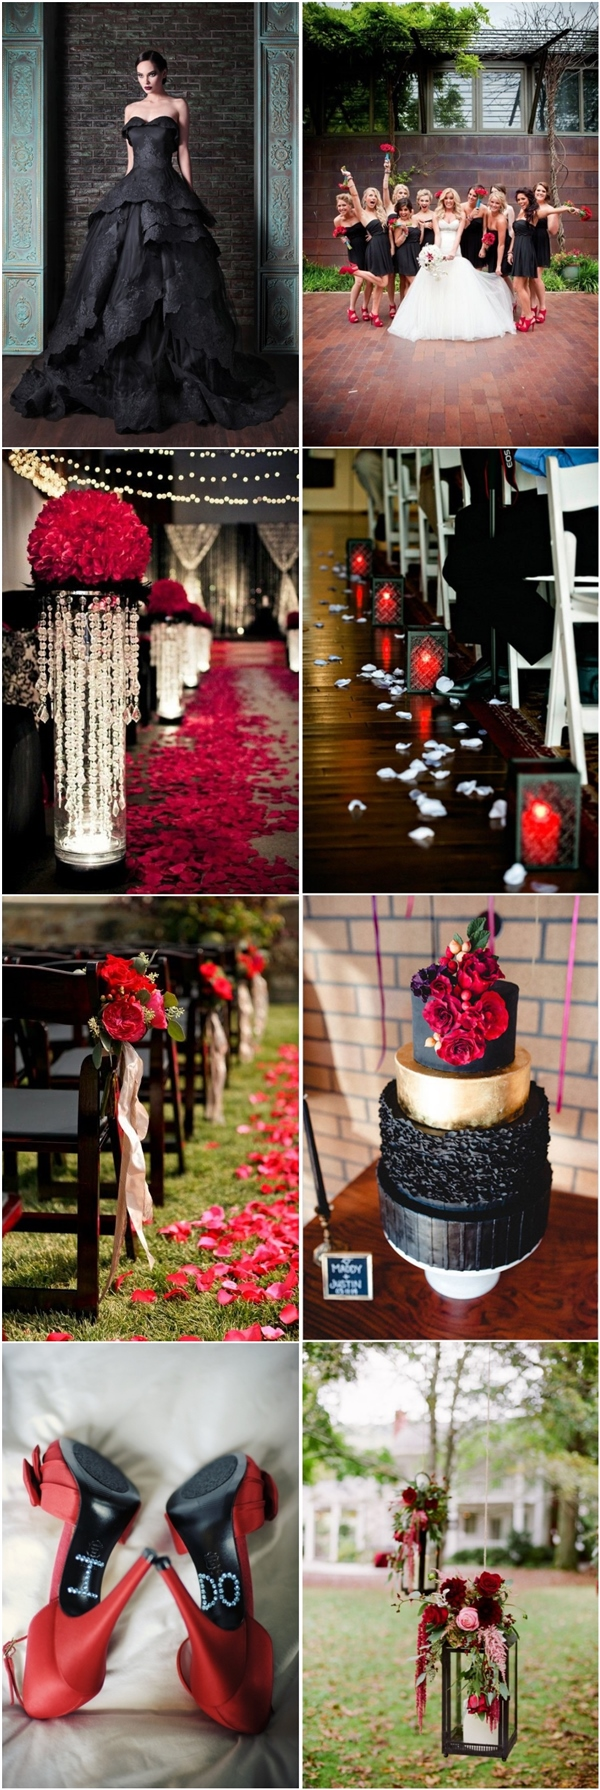 35 Red And Black Vampire Halloween Wedding Ideas Deer